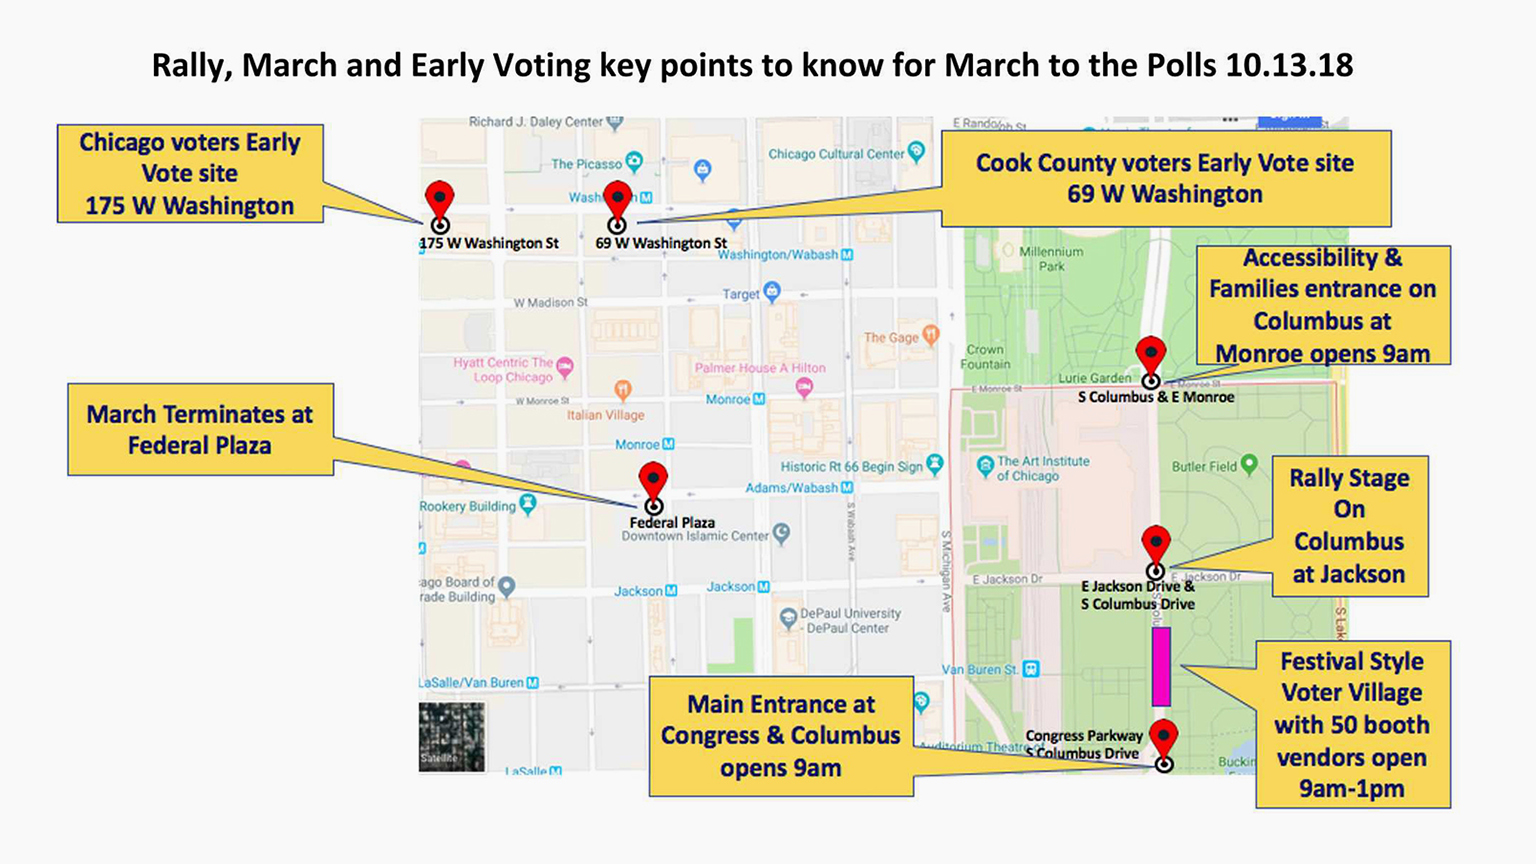 March to the Polls to Honor First-Time Voters Ahead of ... on chicago neighborhood map, chicago airspace map, chicago precinct map, chicago area map, chicago region map, chicago watershed map, chicago district map, chicago tier map, chicago state map, chicago visitors map, chicago elevation map, chicago neighbourhood map, chicago stadium map, chicago topographic map,